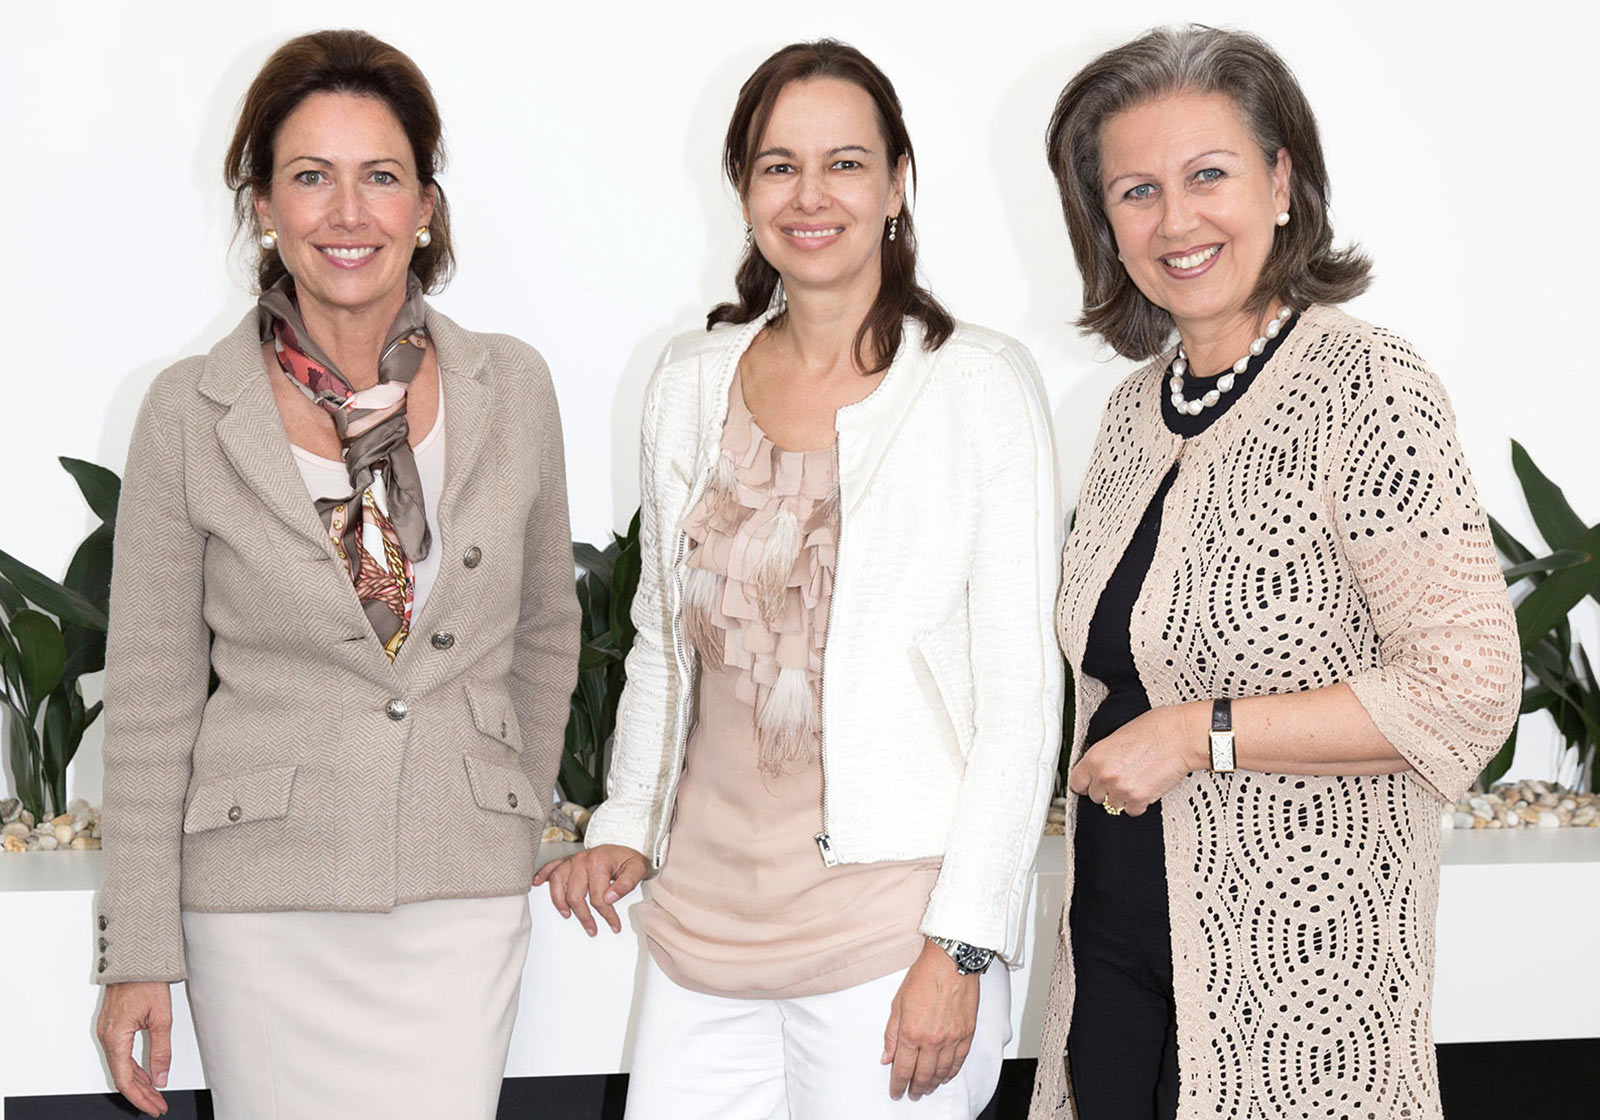 """Girl Power: Barbara Achammer, Sophie Karmasin and Patrizia Zoller-Frischauf in an intense discussion on the subject of """"Careers with Children"""""""